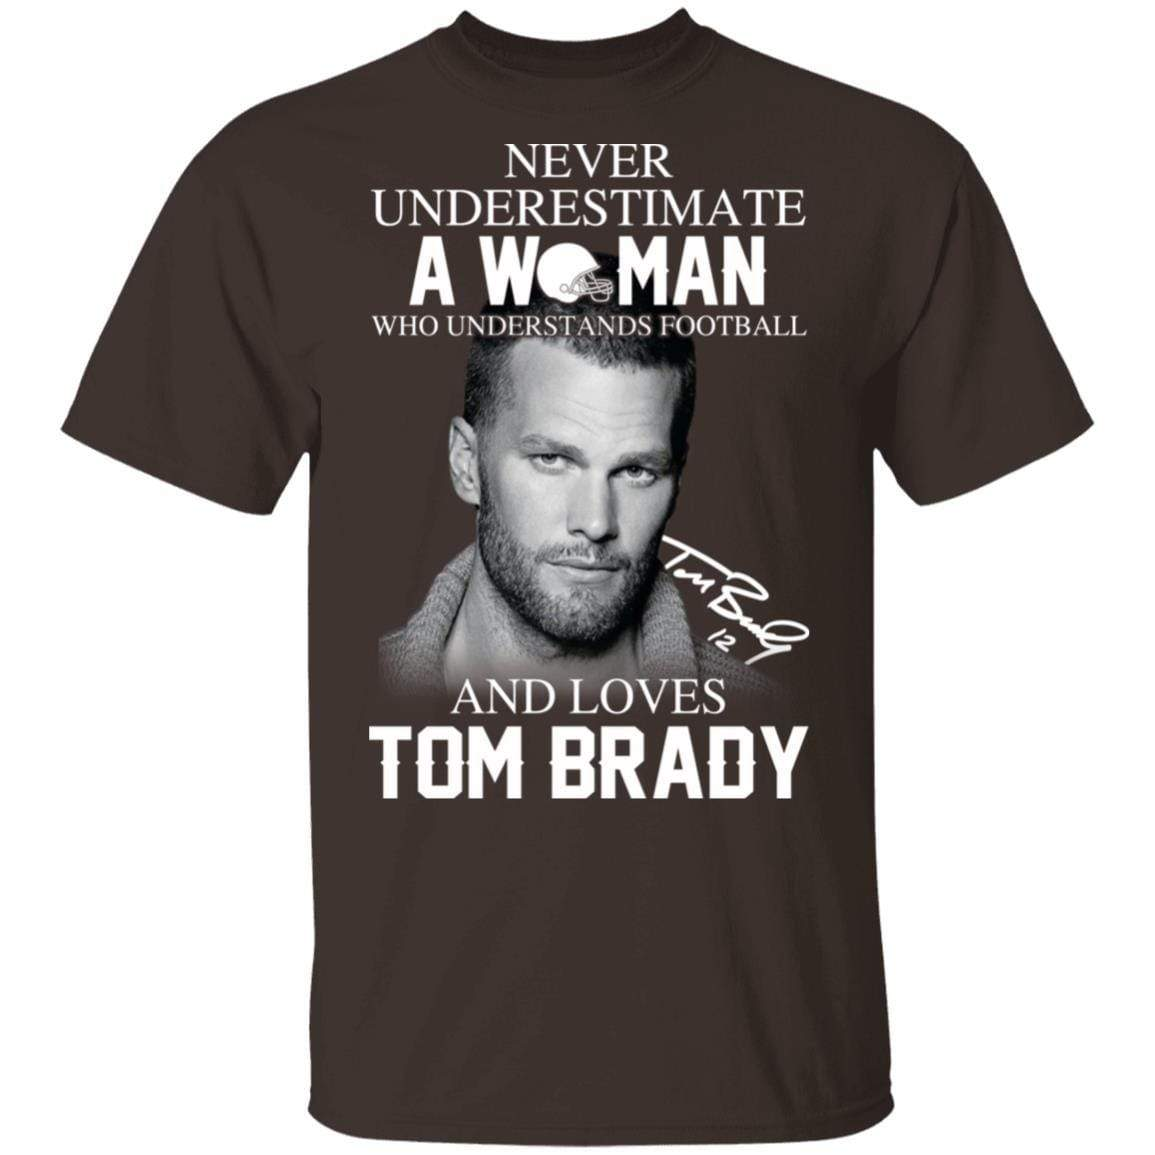 Never Underestimate A Woman Who Understands Football And Loves Tom Brady T-Shirts, Hoodies 1049-9956-86894527-48152 - Tee Ript